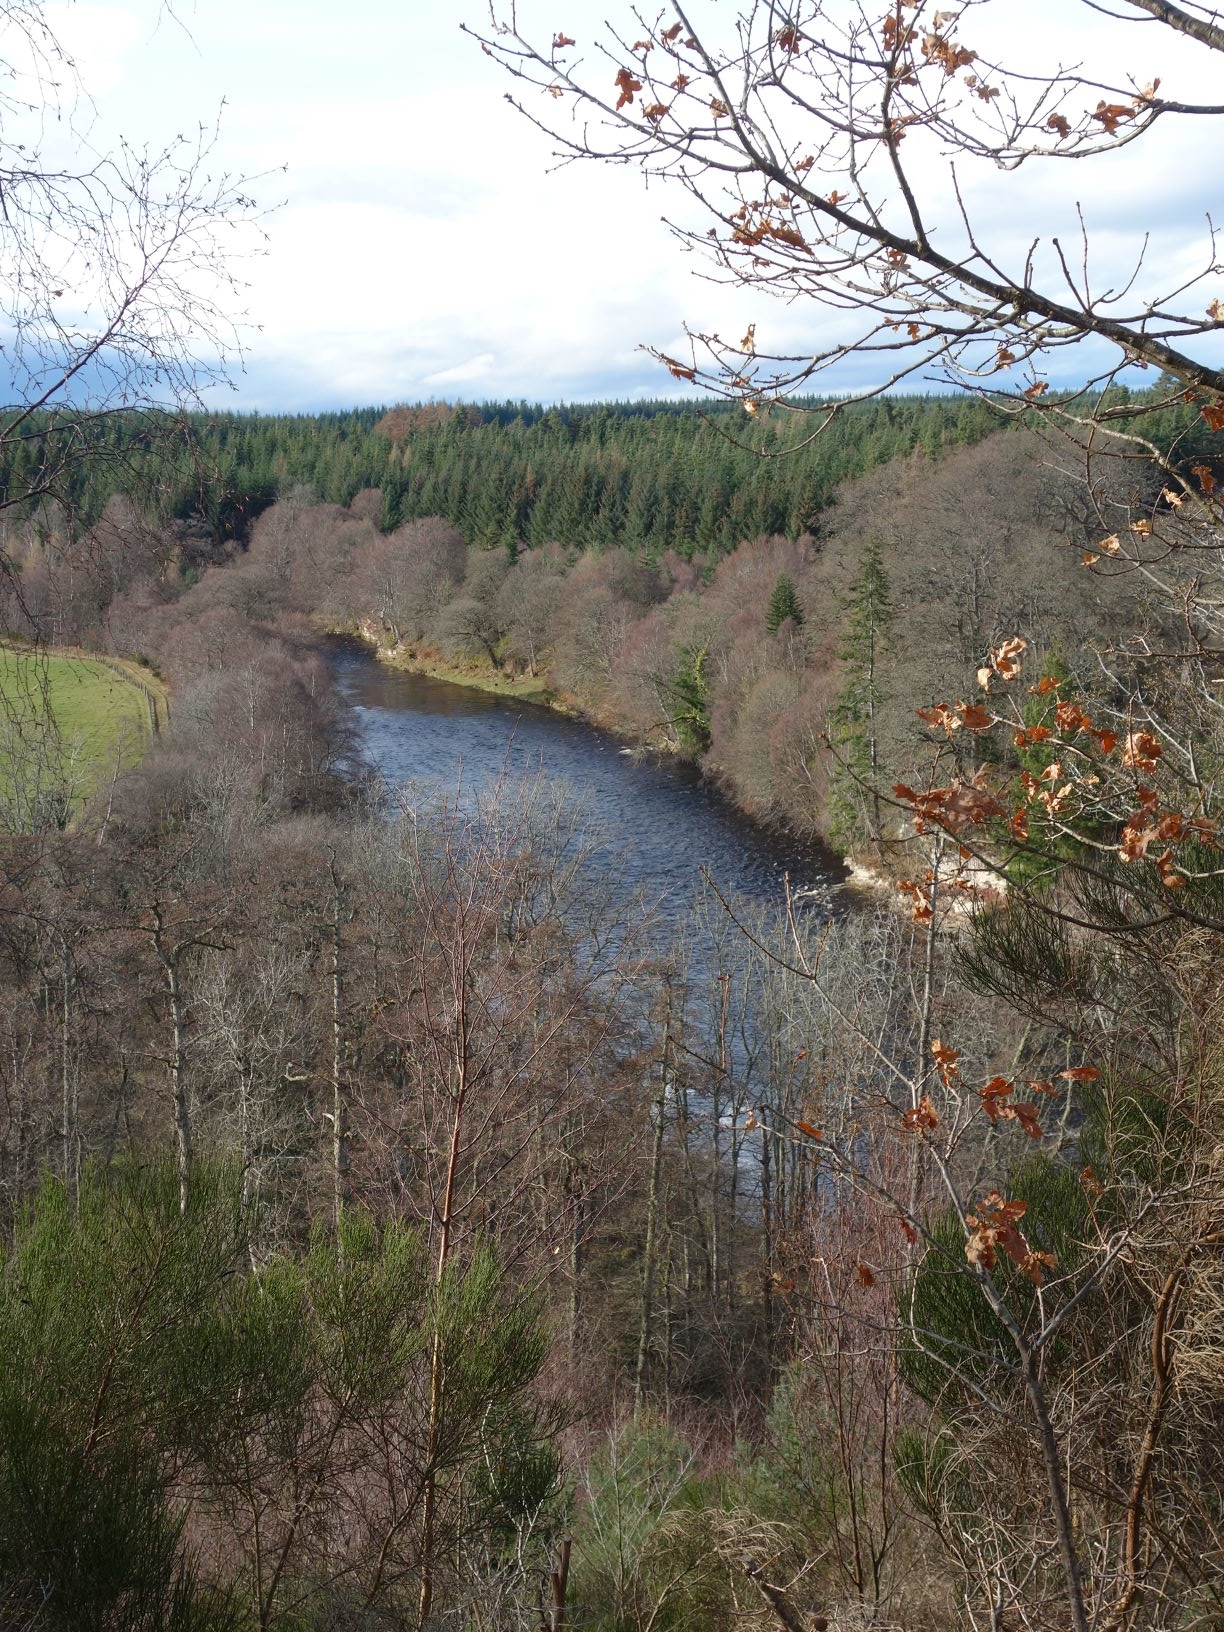 Stunning view from the top of Scur Pool looking upstream towards Palamore Island Pool, Altyre Estate, River Findhorn